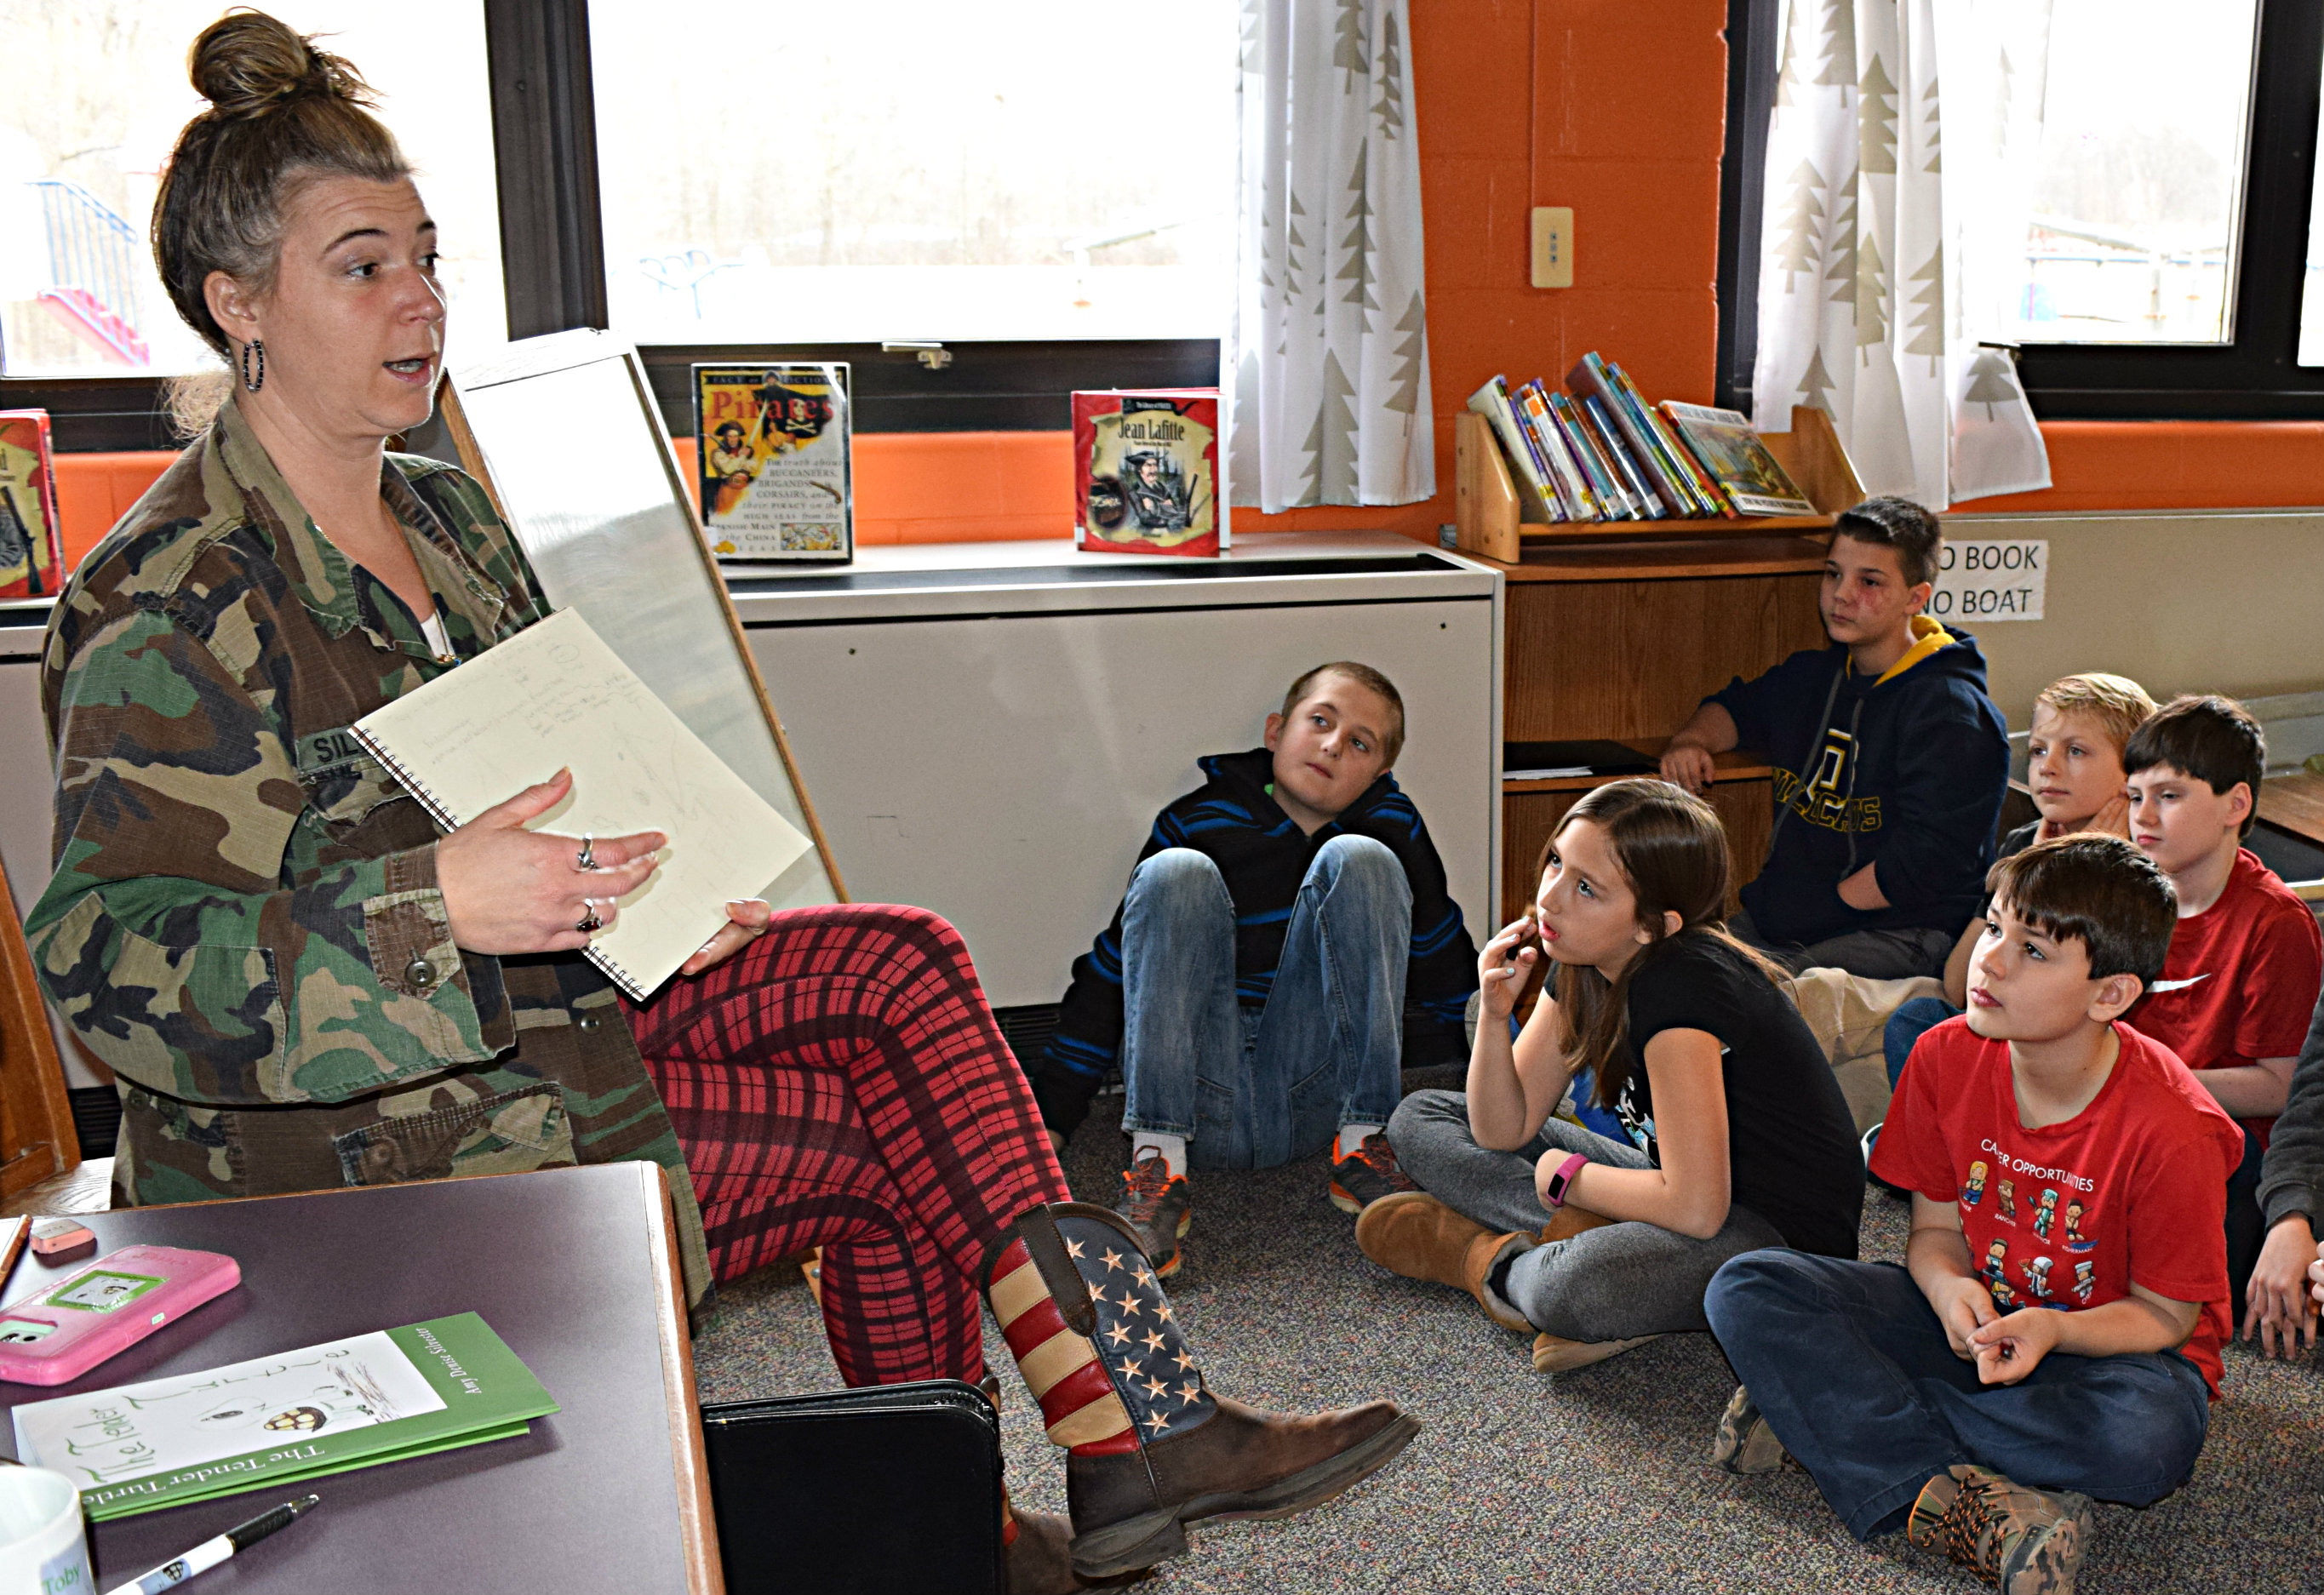 Children's author/illustrator Amy Silvester (left) discusses story ideas with Leonard Elementary students during her March 24 visit to the school. Photo by Elise Shire.